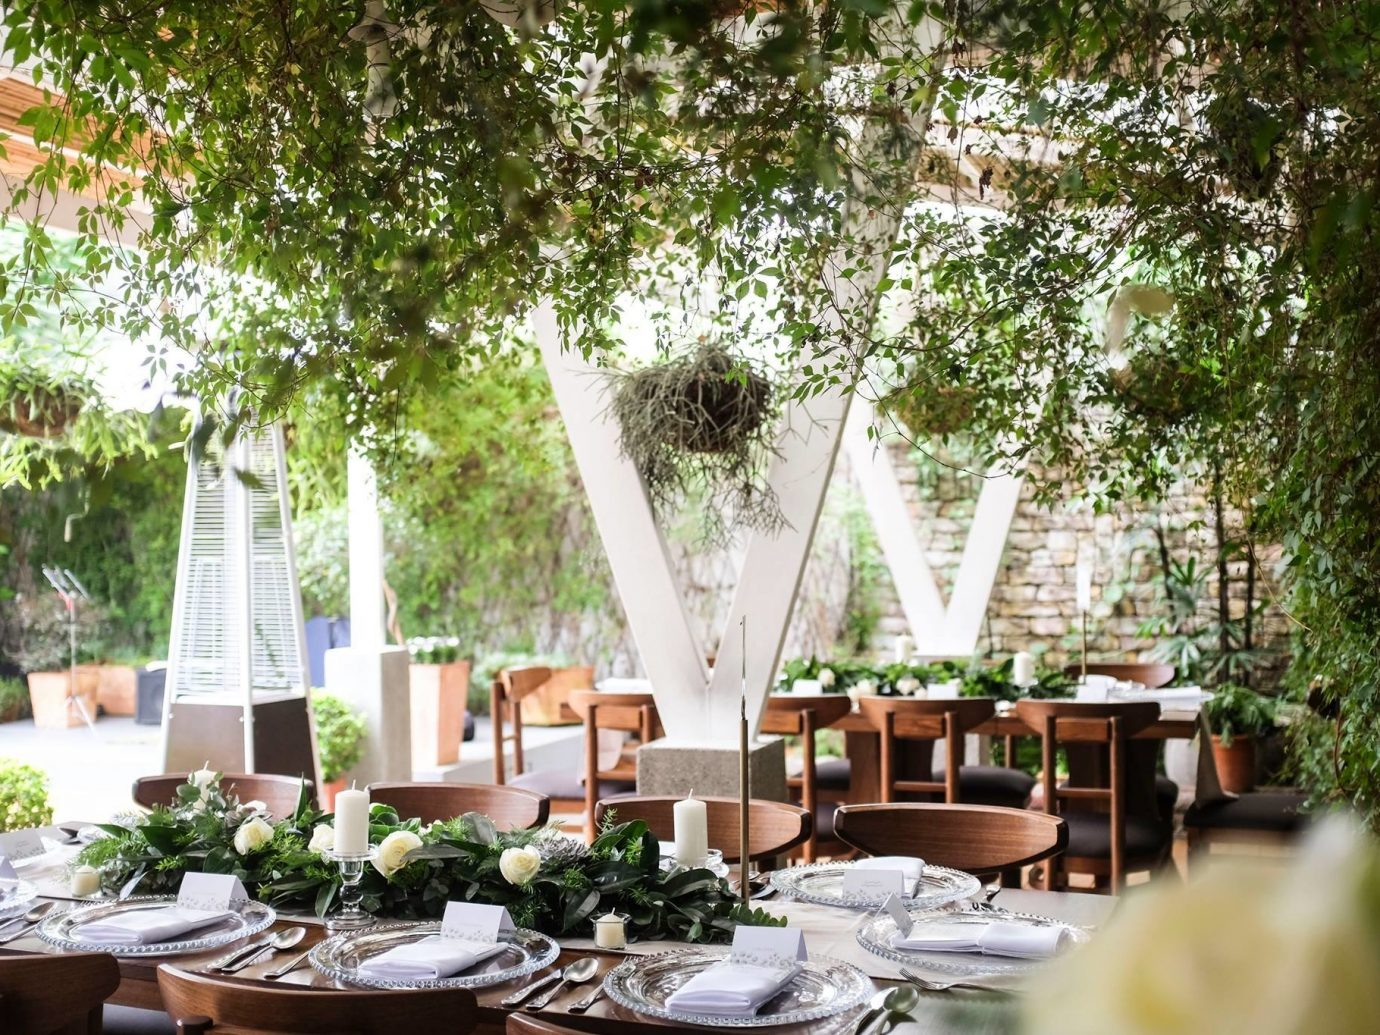 Food + Drink Trip Ideas tree table outdoor floristry flower arranging centrepiece backyard function hall ceremony Dining floral design outdoor structure plant interior design plantation flower restaurant banquet tablecloth meal furniture Garden several dining table